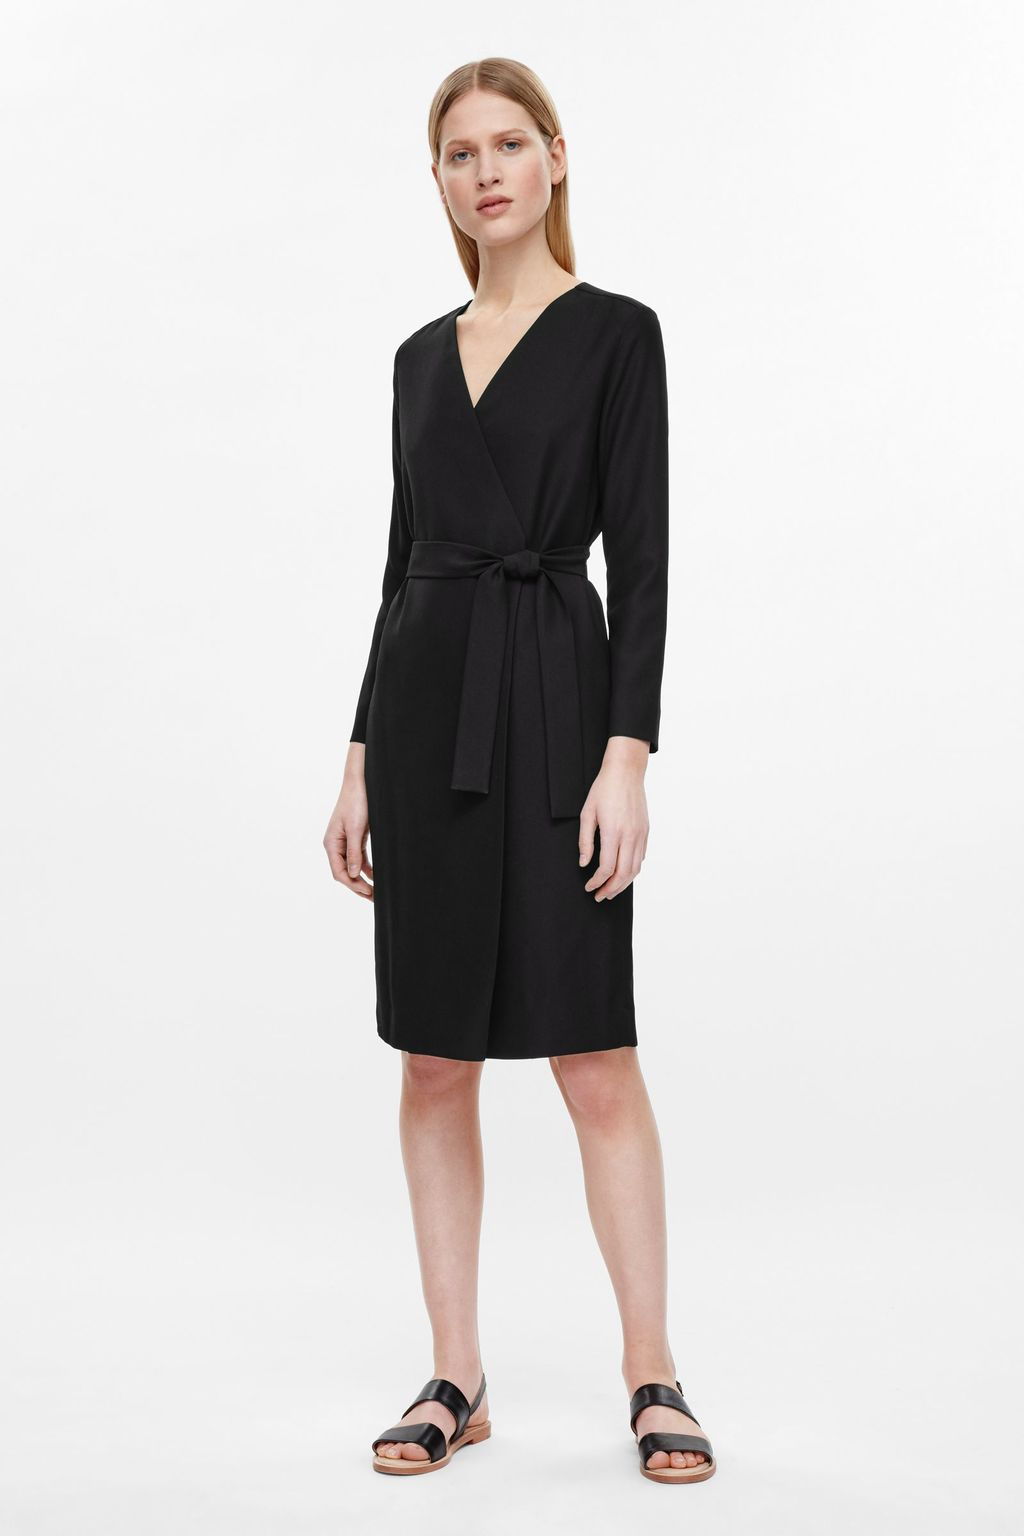 Wrap Dress With Tie - style: faux wrap/wrap; neckline: low v-neck; pattern: plain; predominant colour: black; length: on the knee; fit: body skimming; fibres: polyester/polyamide - 100%; sleeve length: long sleeve; sleeve style: standard; pattern type: fabric; texture group: other - light to midweight; occasions: creative work; season: s/s 2016